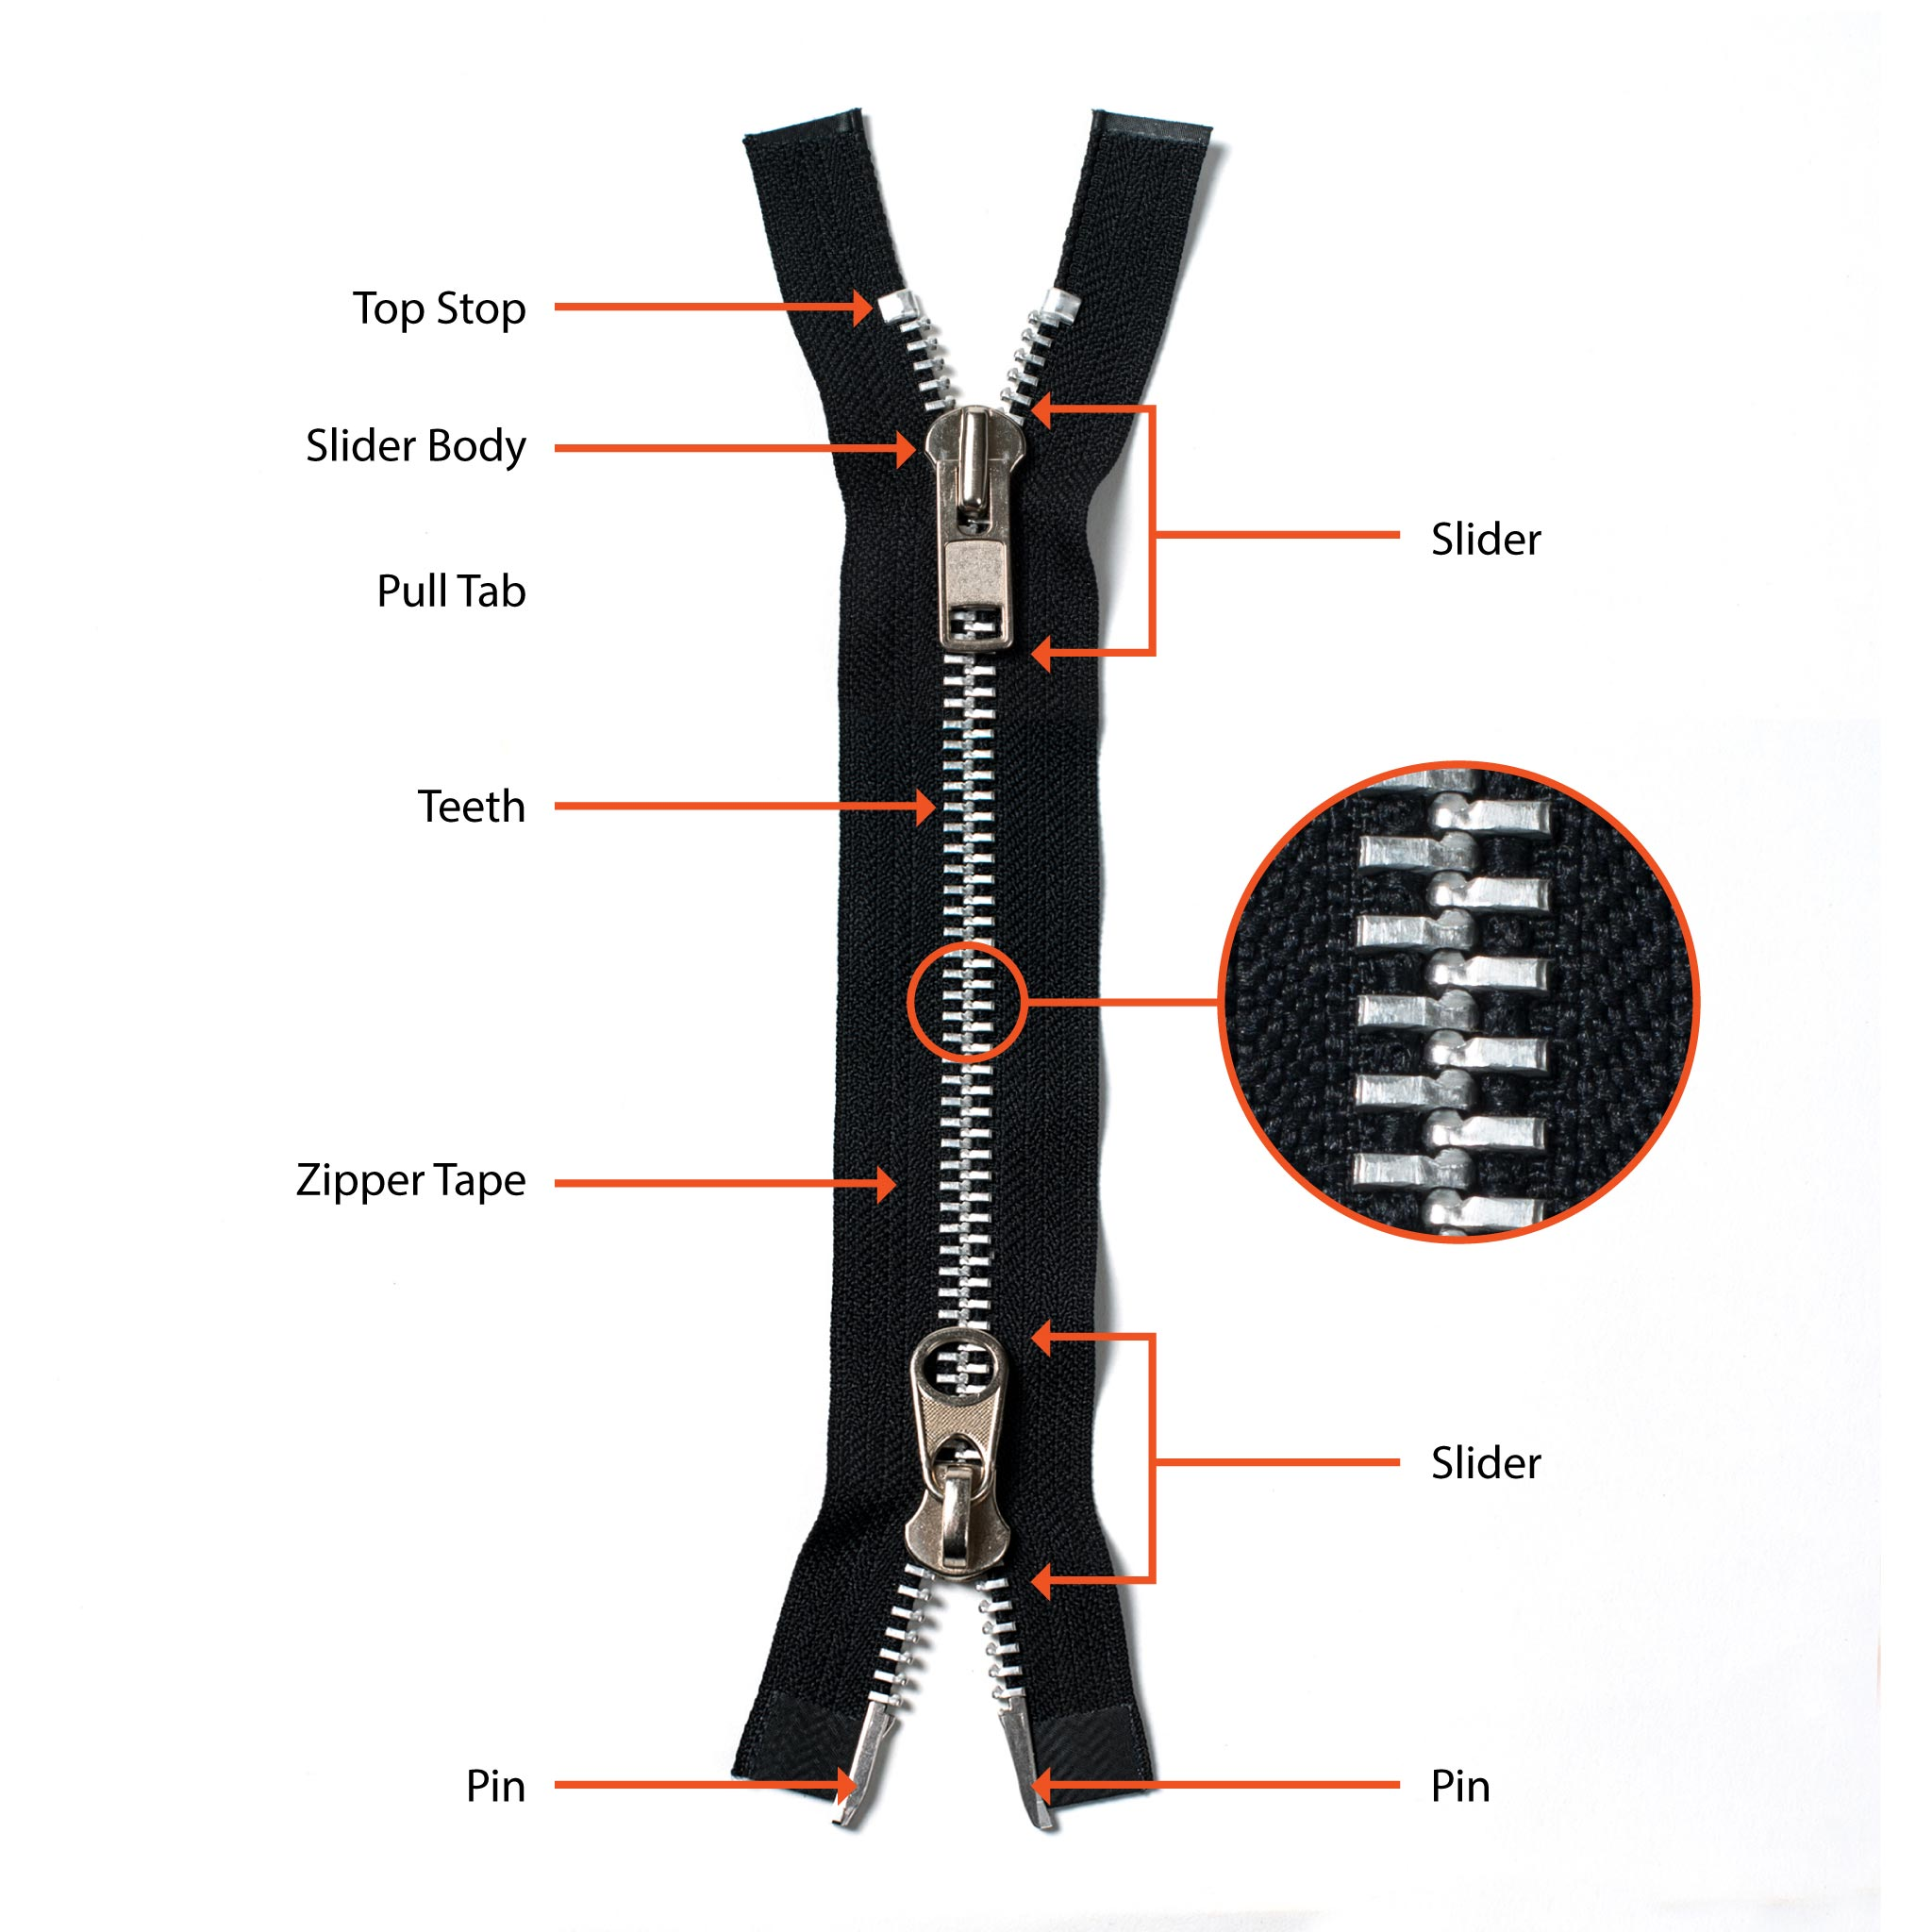 Frequently Asked Questions Zipper Rescue